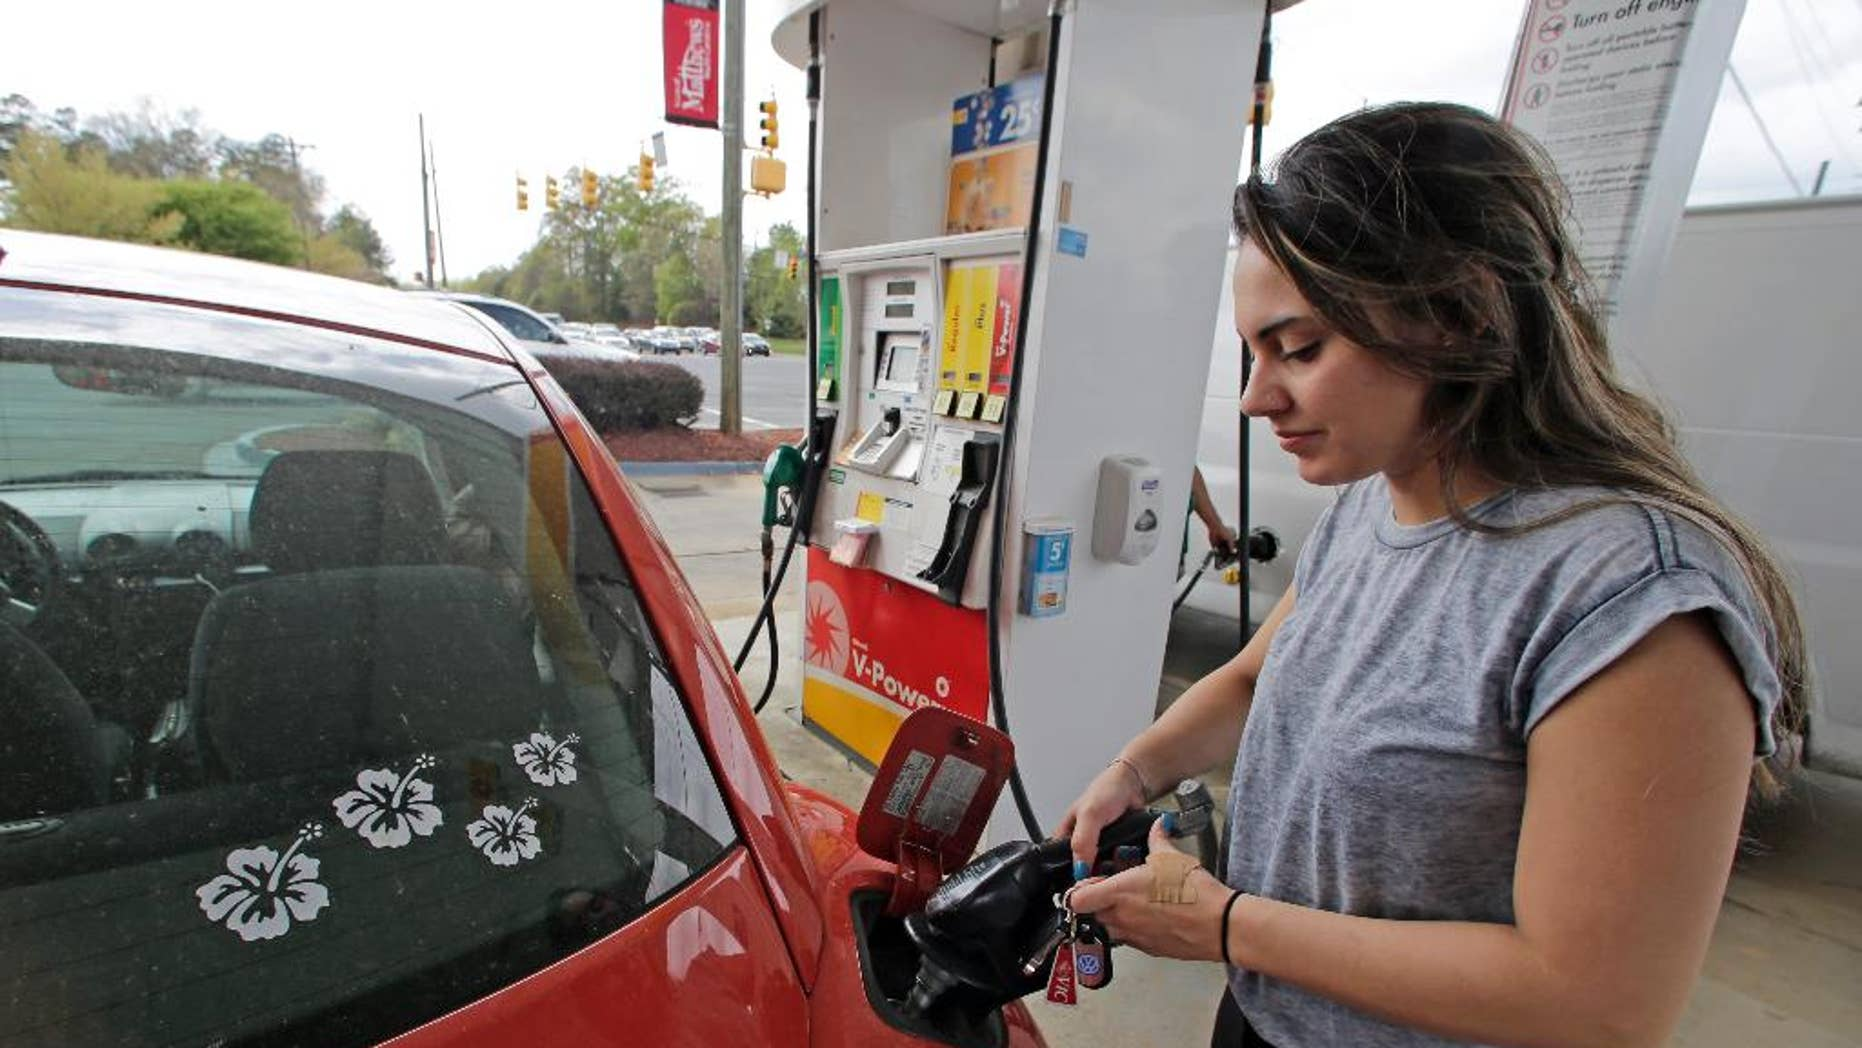 FILE - In this April 6, 2015 file photo, Lucy Perez, of Charlotte, N.C., pumps gas at a station in Matthews, N.C.  The University of Michigan issues its monthly index of consumer sentiment for April on Friday, May 1, 2015. (AP Photo/Chuck Burton, File)